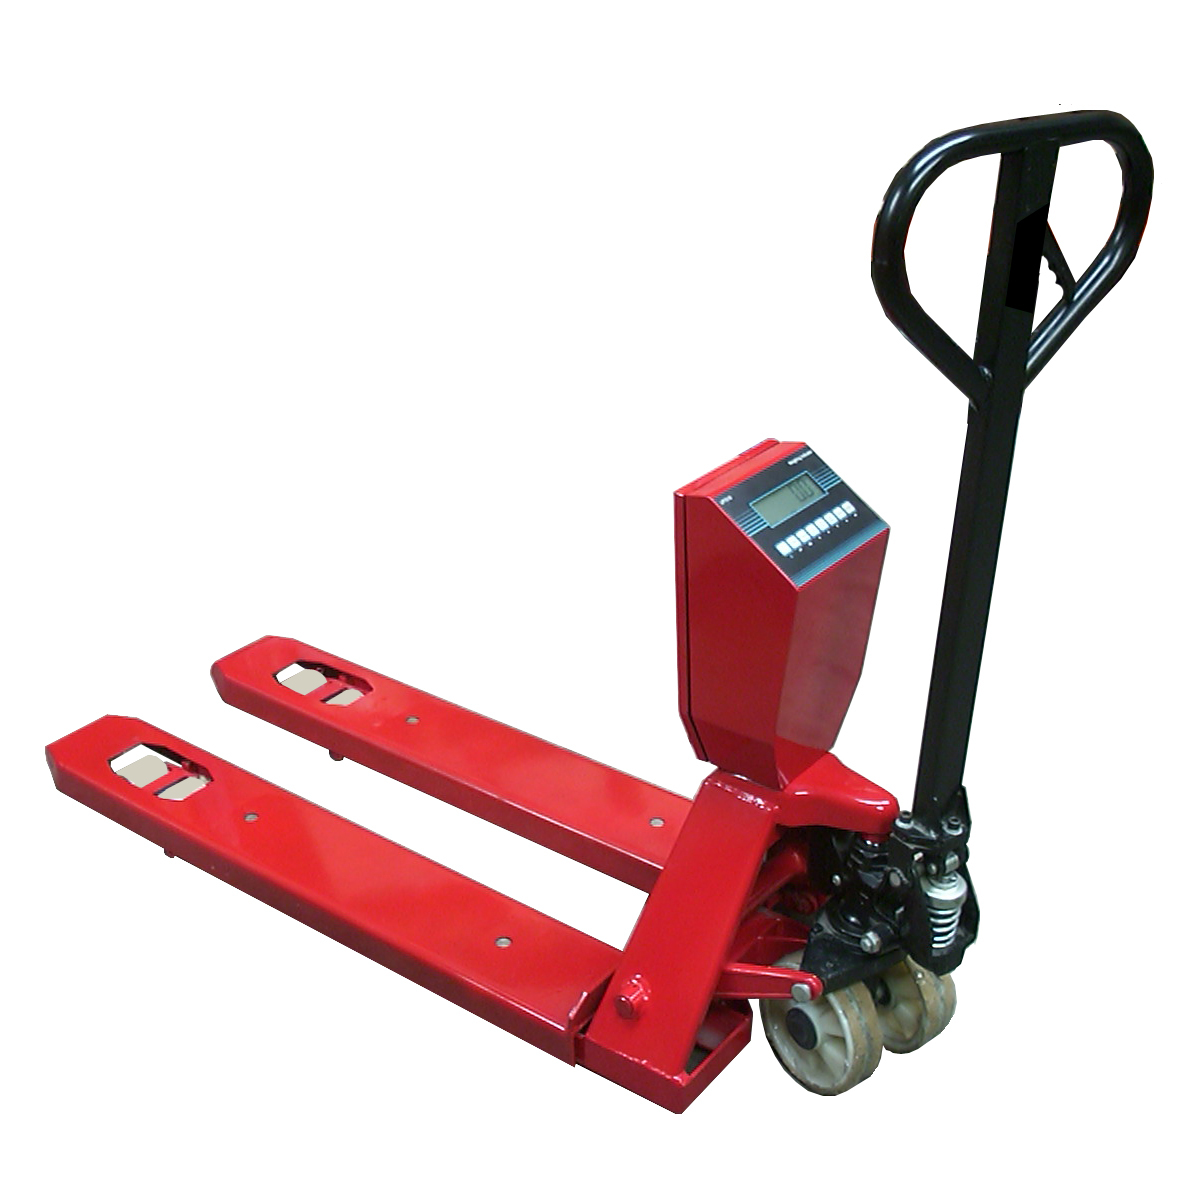 Pallet Weighers from weighingscales.com